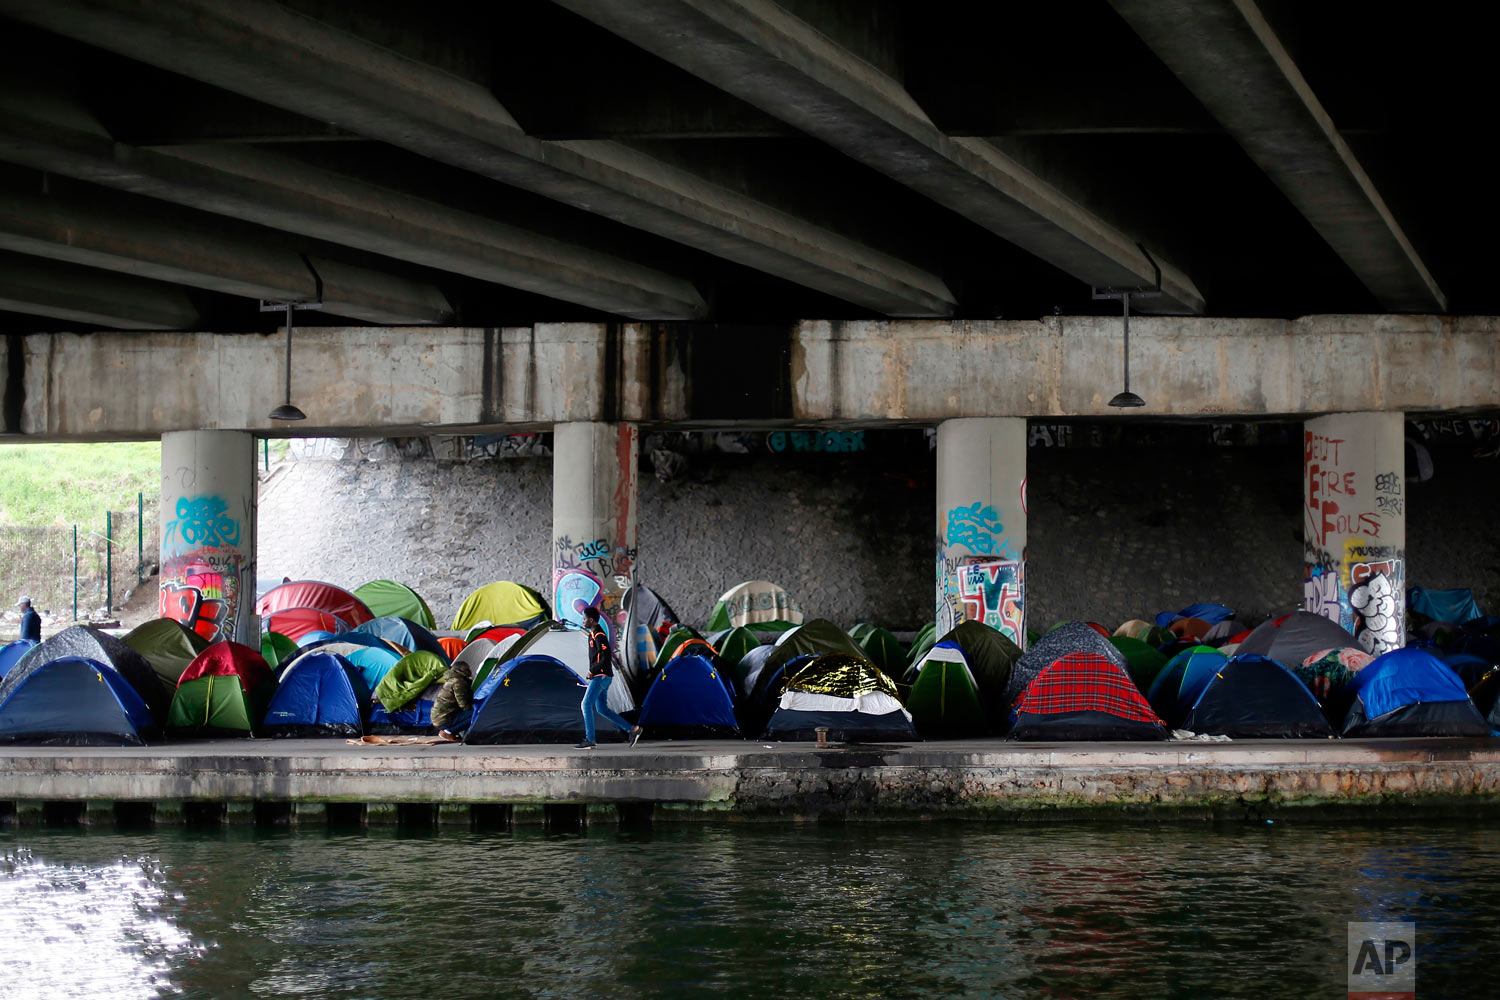 A migrant walks by tents in a makeshift camp along the Canal Saint Denis, in Paris, Wednesday, April 4, 2018. (AP Photo/Thibault Camus)